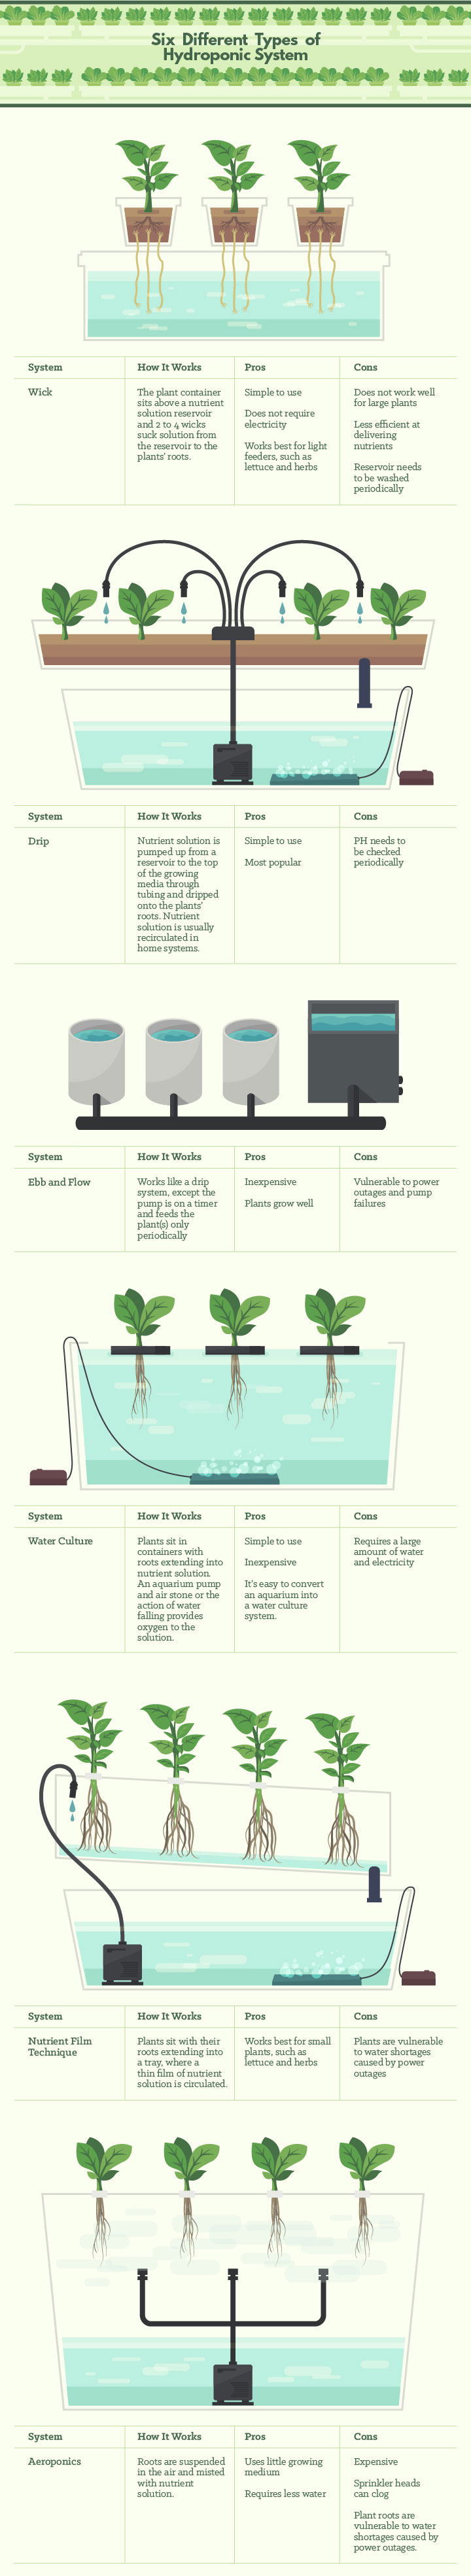 Growing Soilless Your Introduction To Hydroponics Gardening